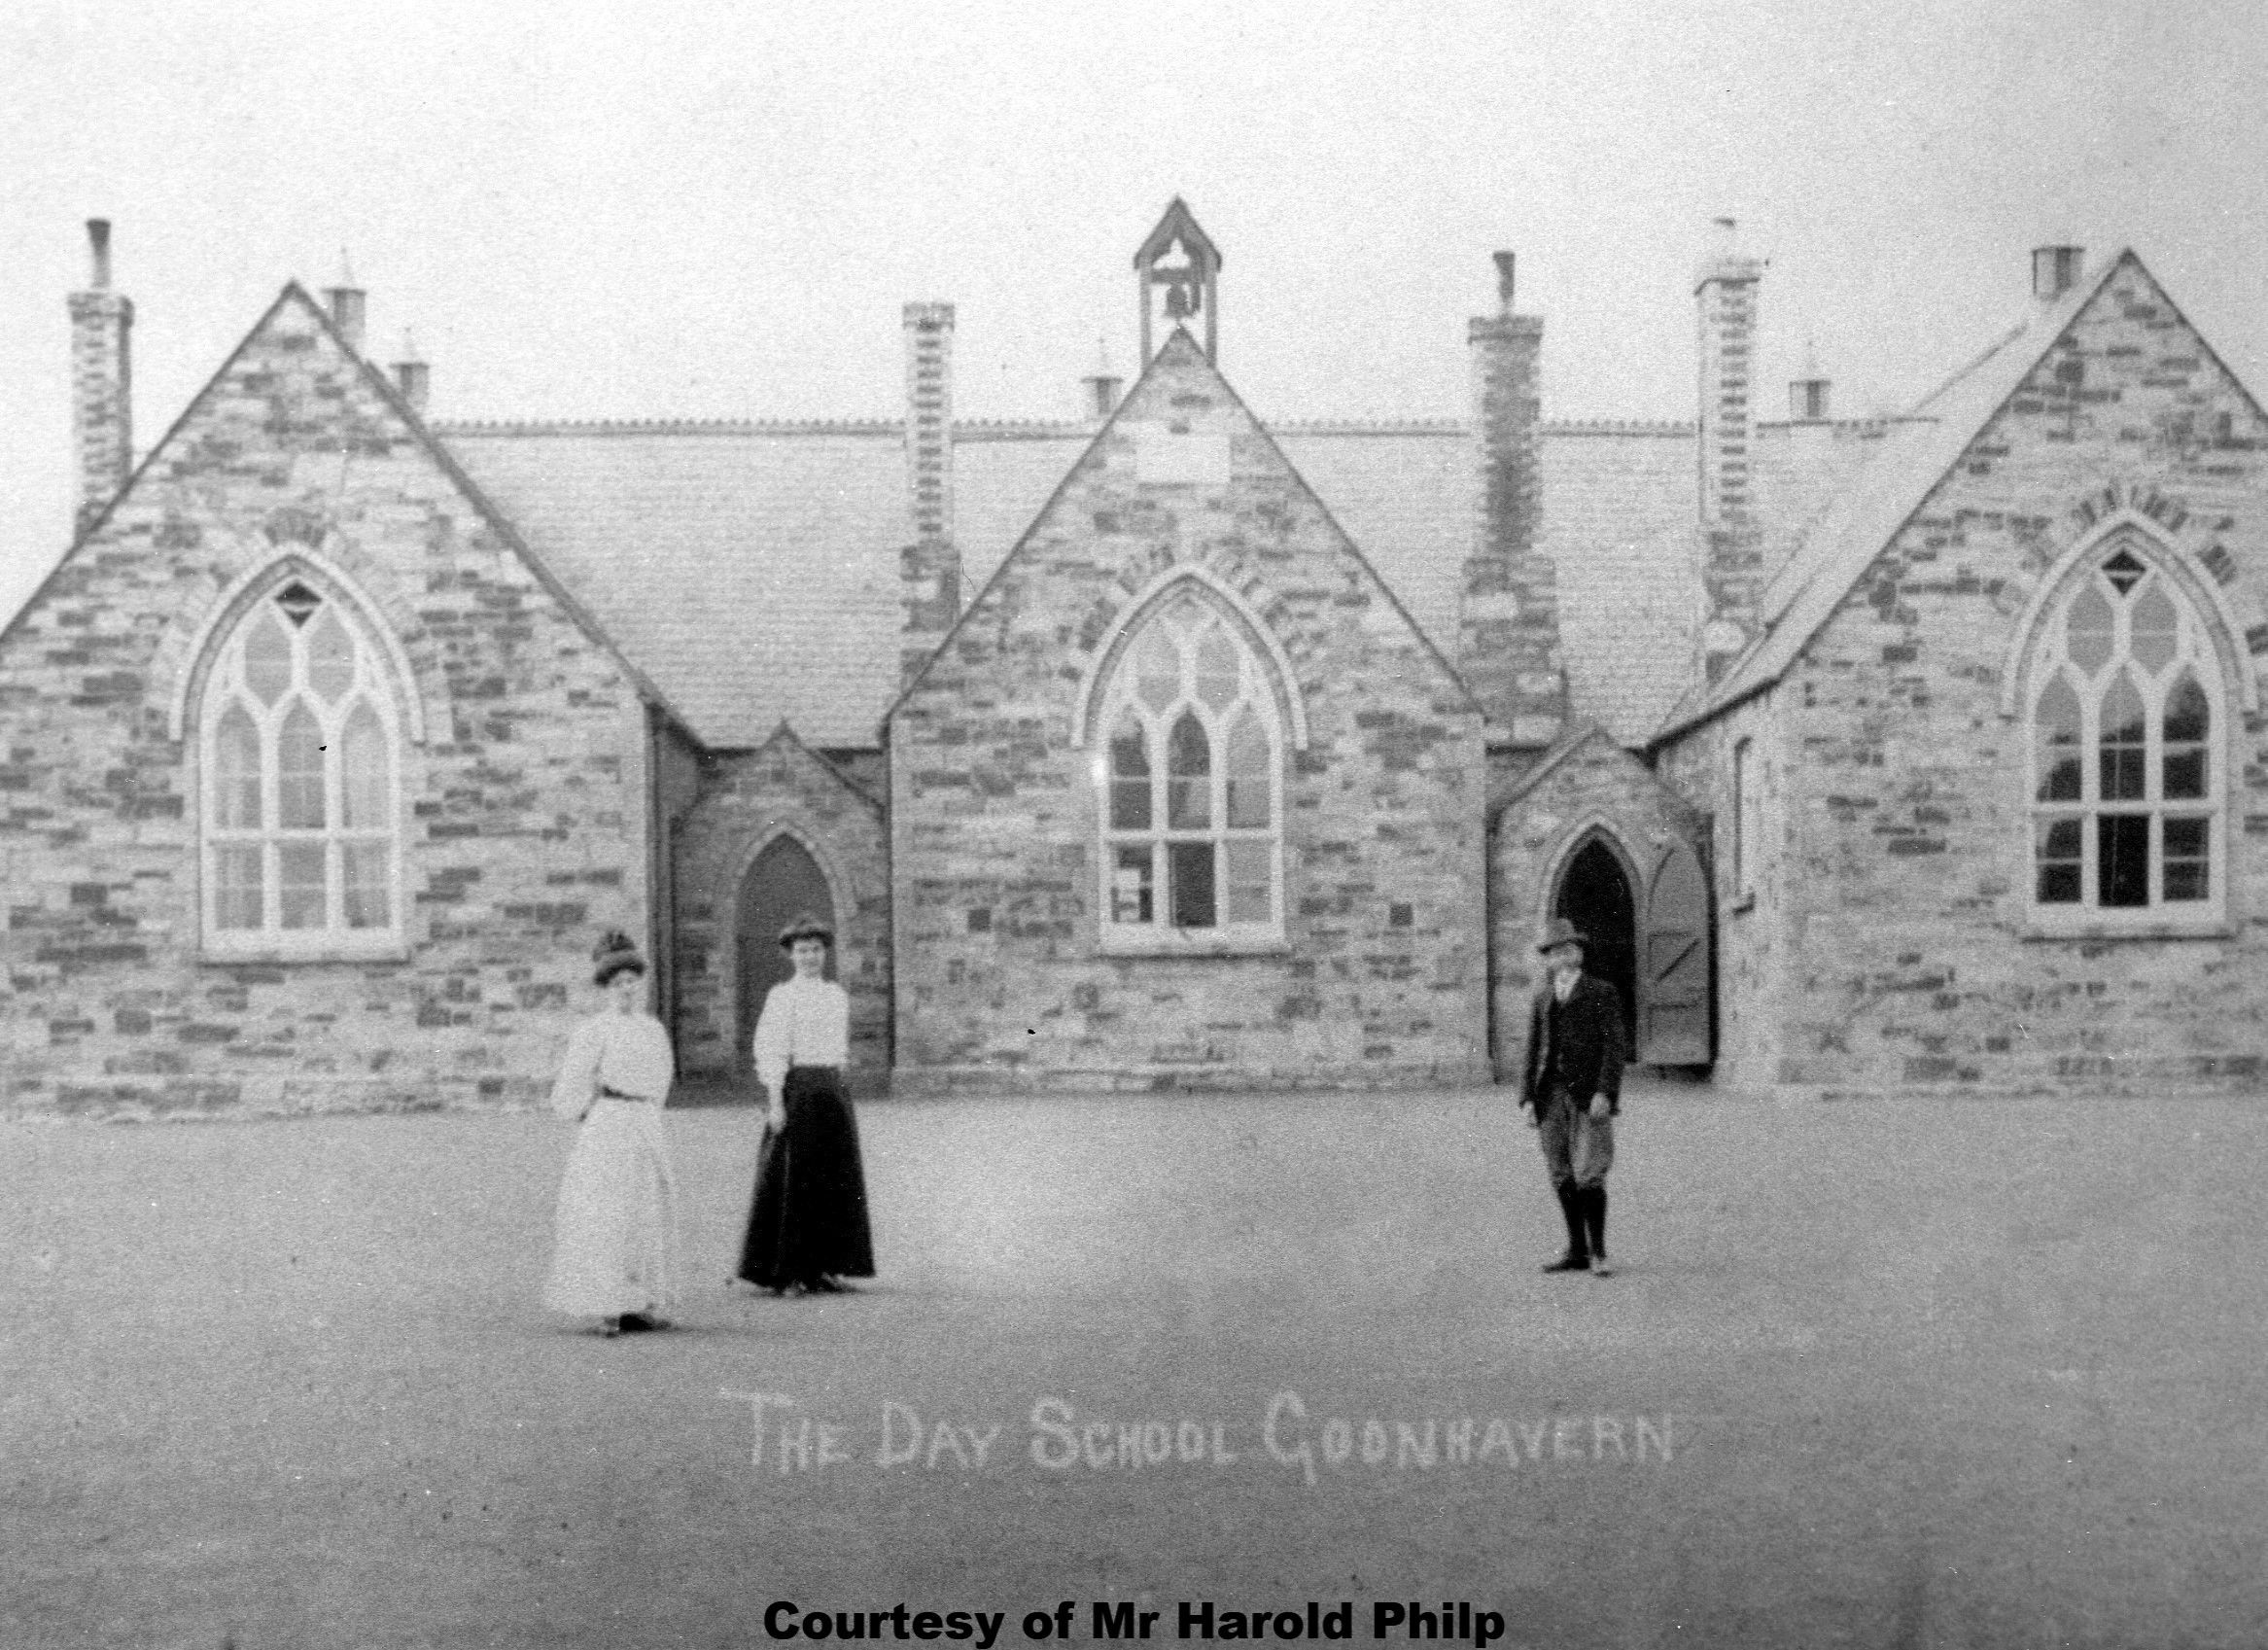 Goonhavern County Primary School Circa 1910. Here is Headmaster Mr Matthew Hoskin Keast with his two daughters Martha and Olga both Teachers